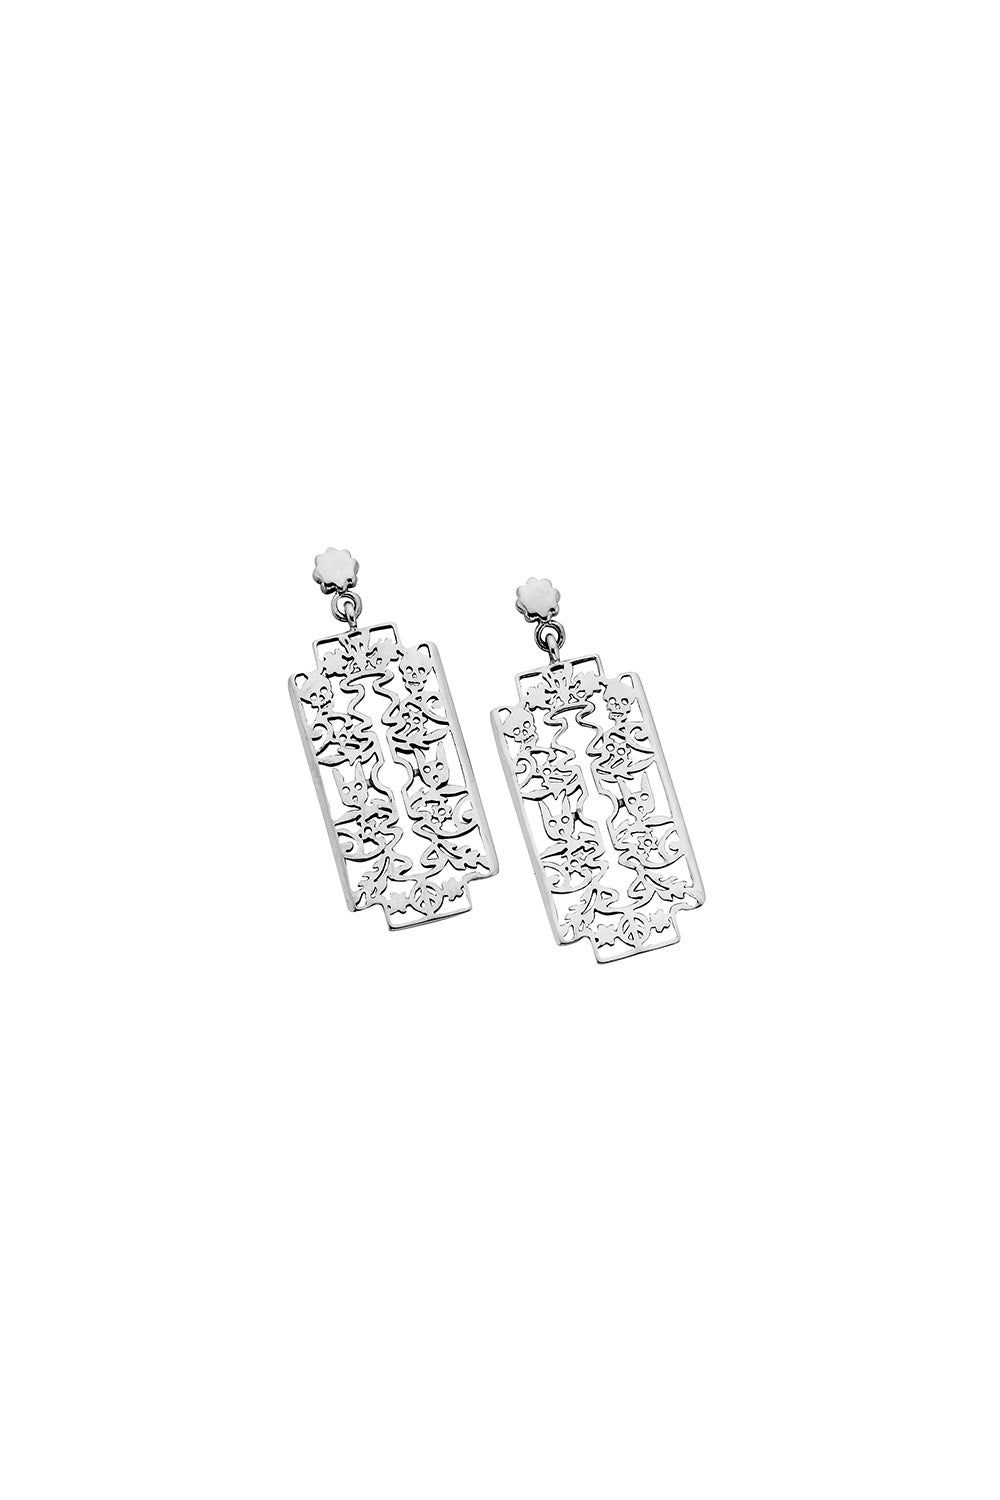 Razor Earrings Silver